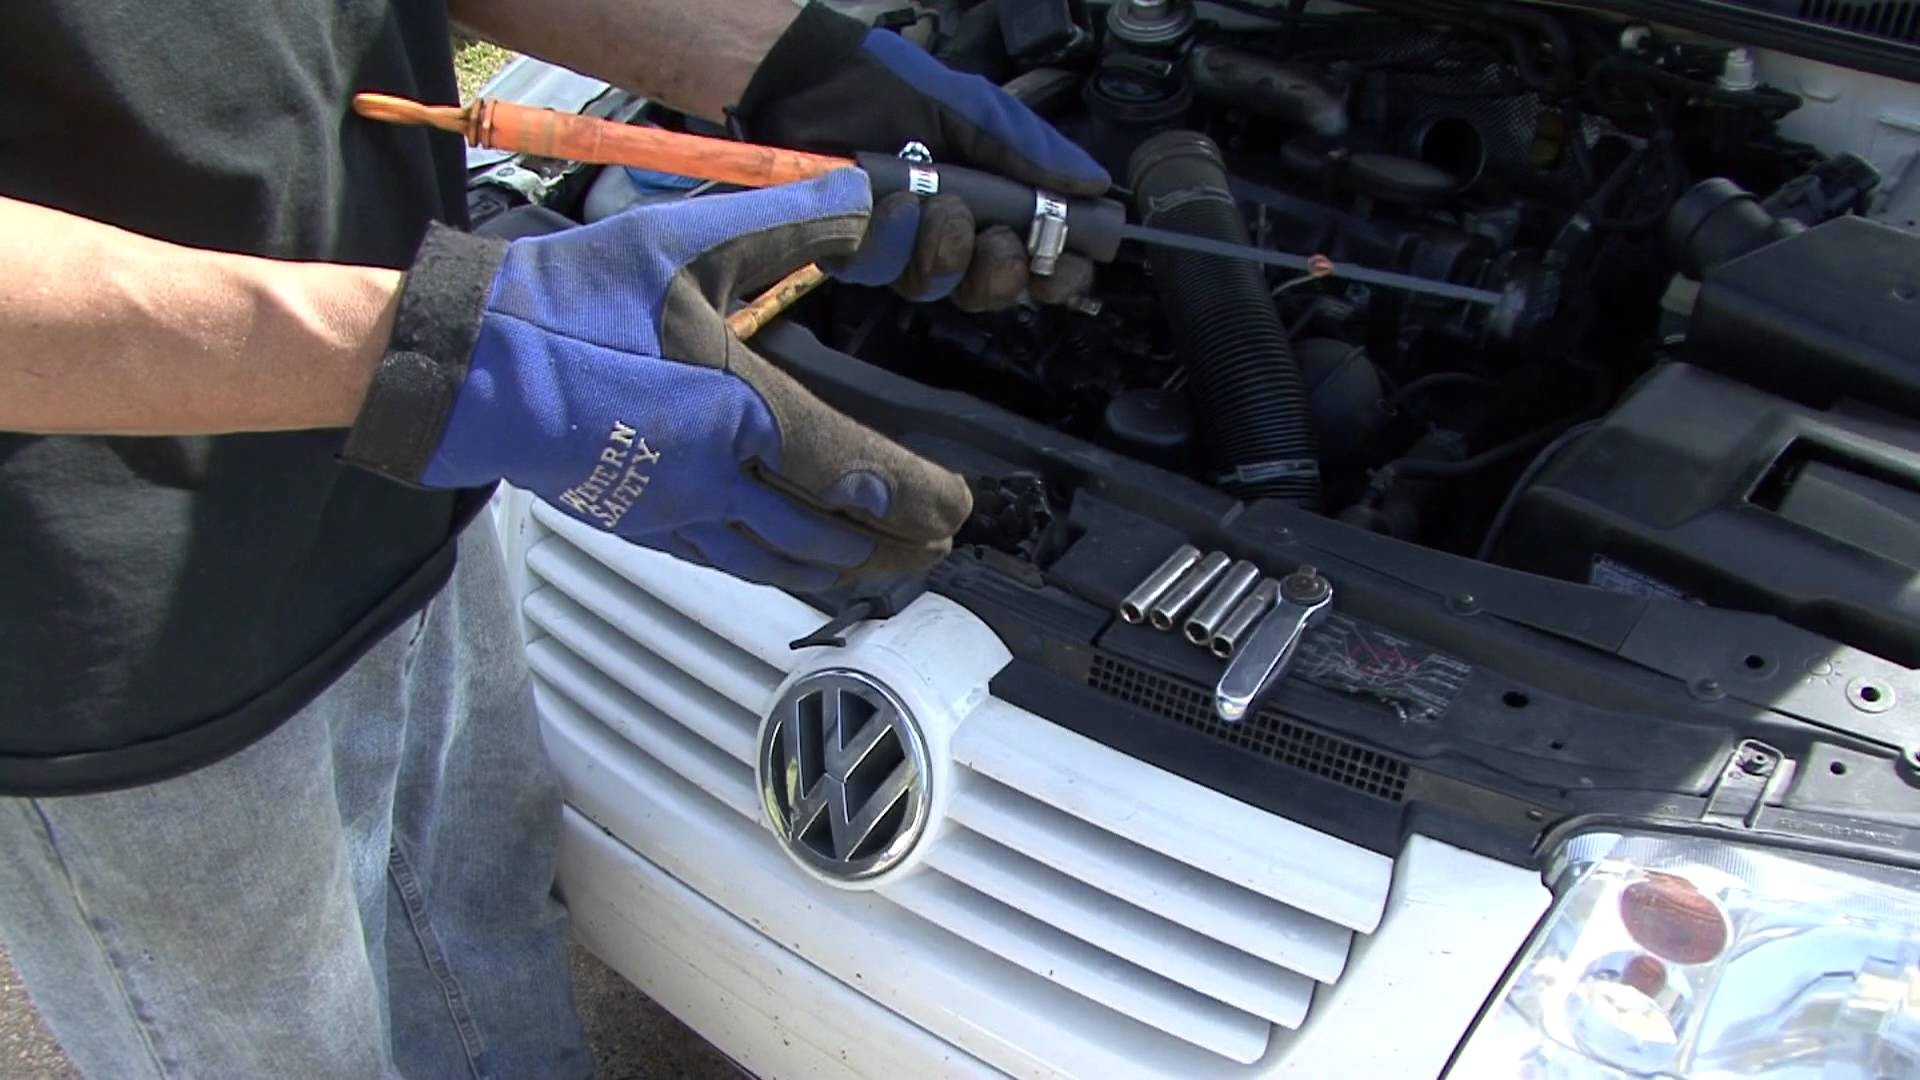 2001 Vw Beetle Turbo Engine Diagram How to Fix A Volkswagen Oil Dip Stick Part 1 Of 2001 Vw Beetle Turbo Engine Diagram